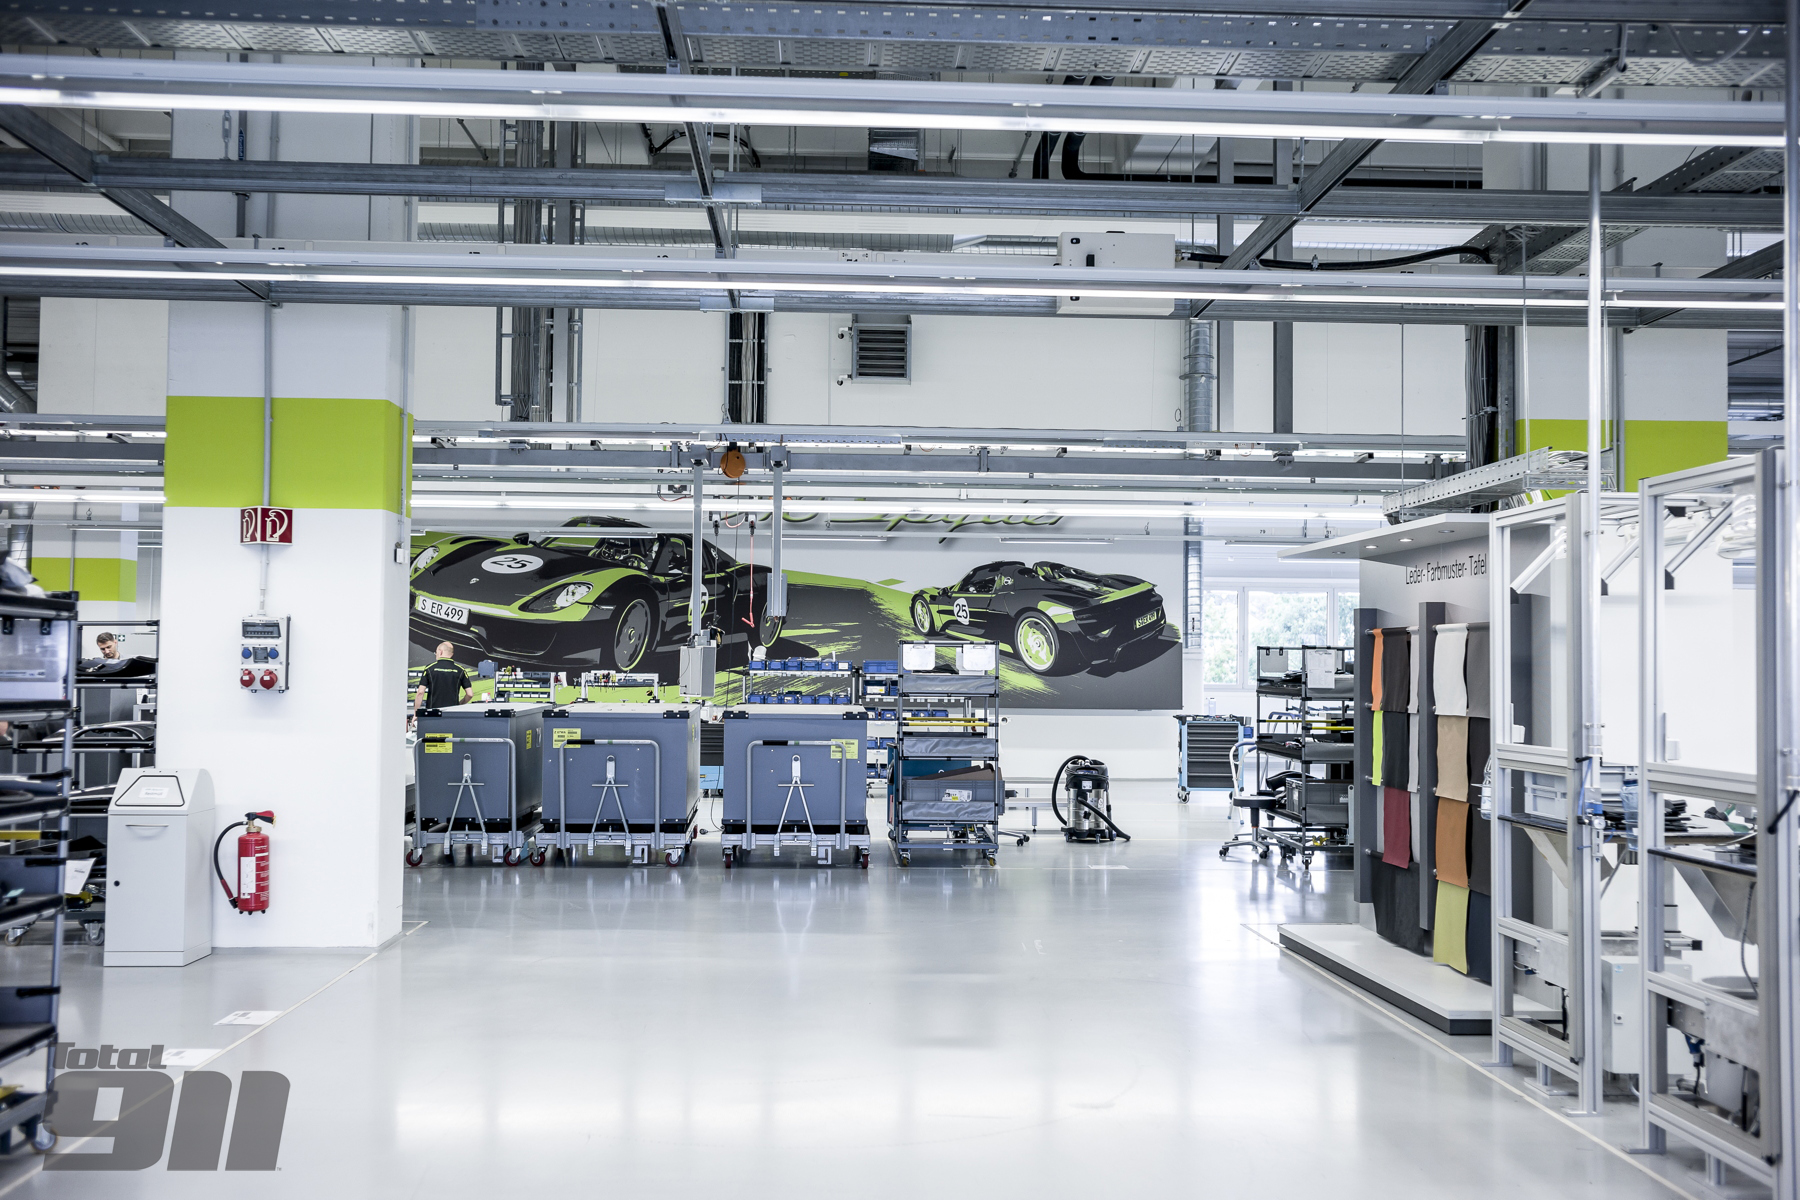 An eerily peaceful single room above the standard sports car production line, an unlikely venue for the birth of Porsche's first hypercar.